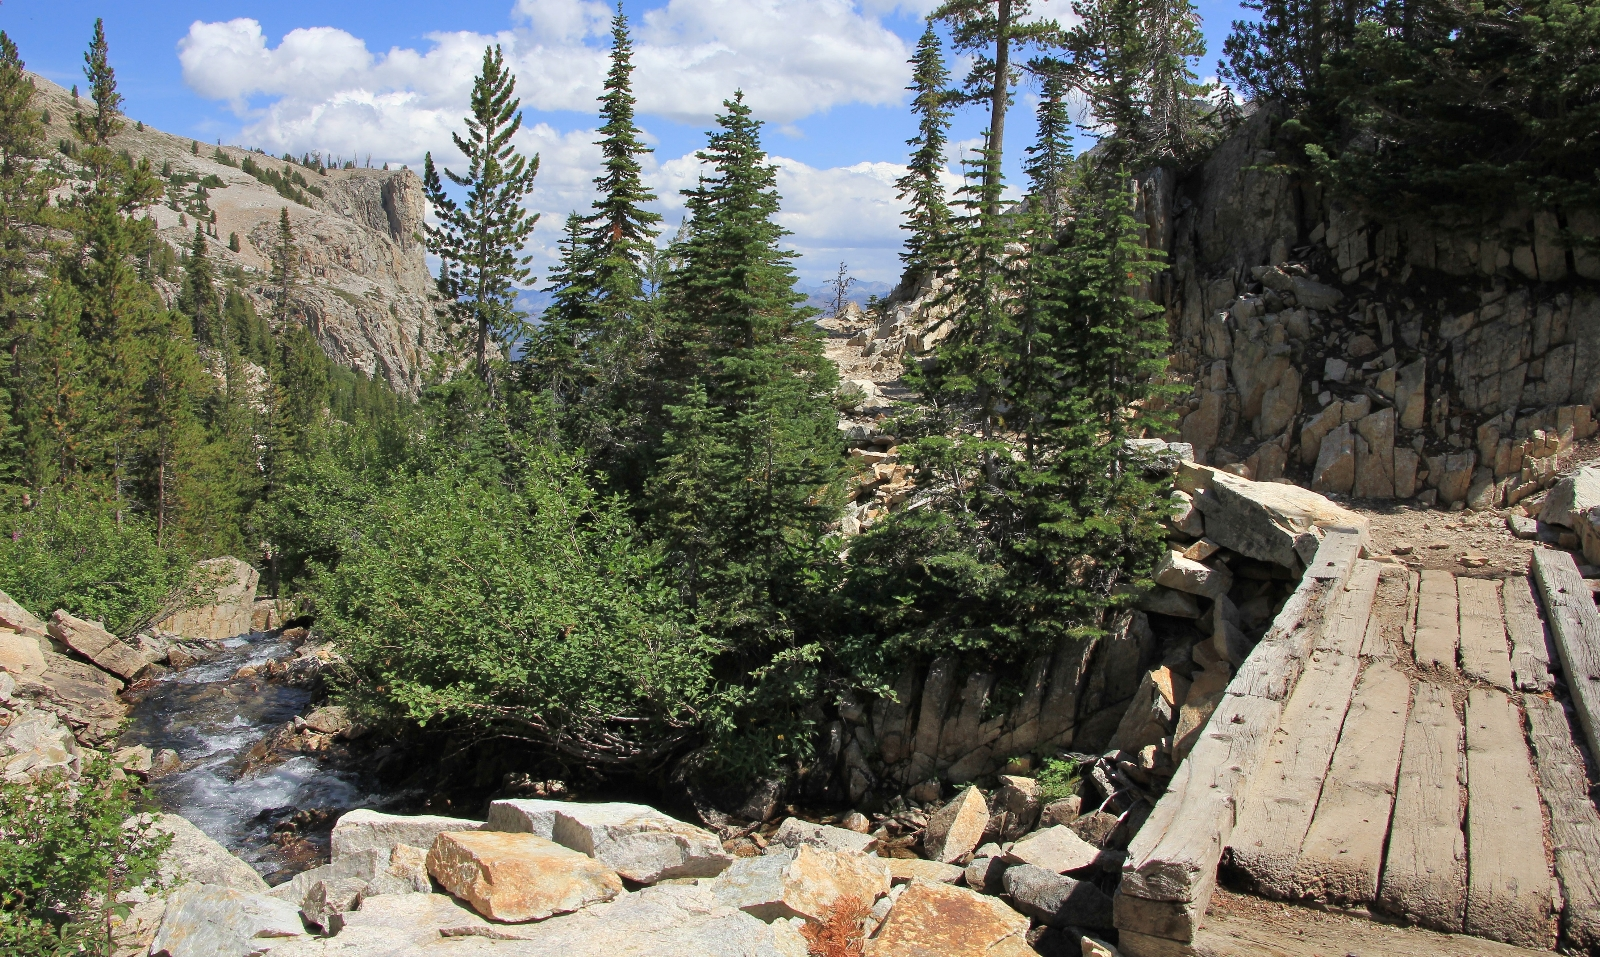 08-15-14 Sawtooths Alice Lake Hike (104)